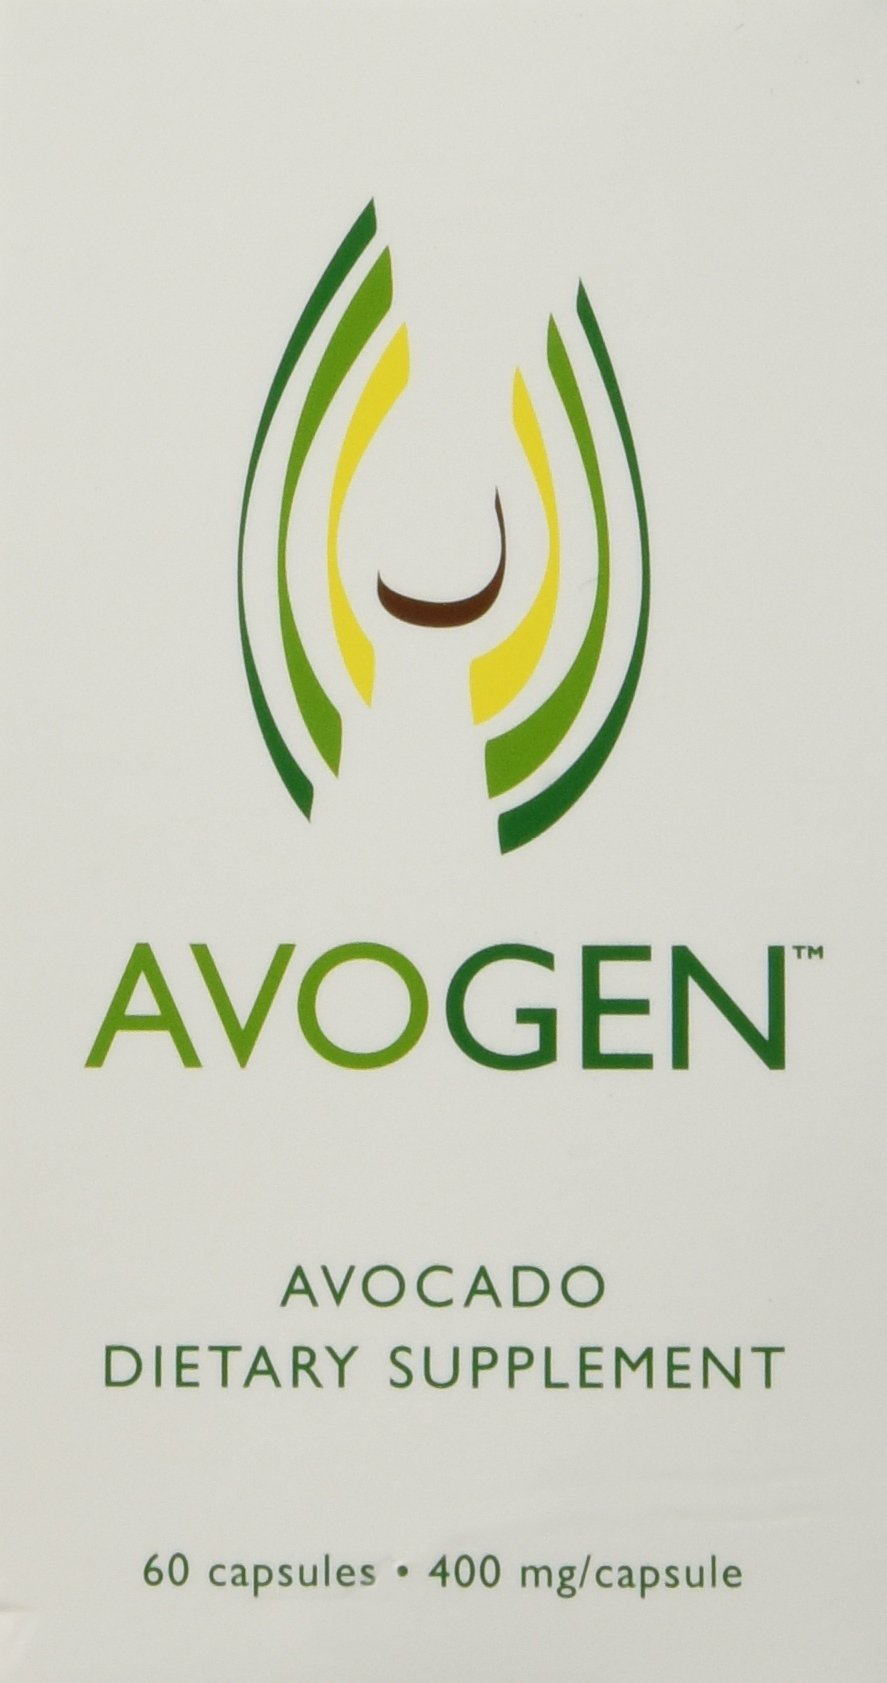 Avogen Avocado Dietary Supplement,60 capsules,400mg/capsule